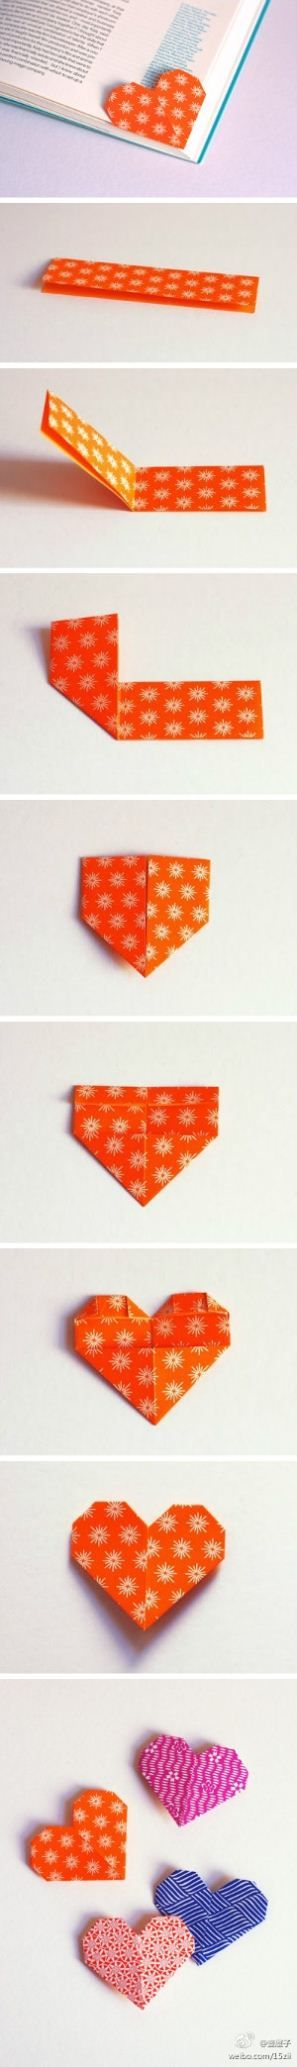 #DIY #Origami #Bookmark #Heart